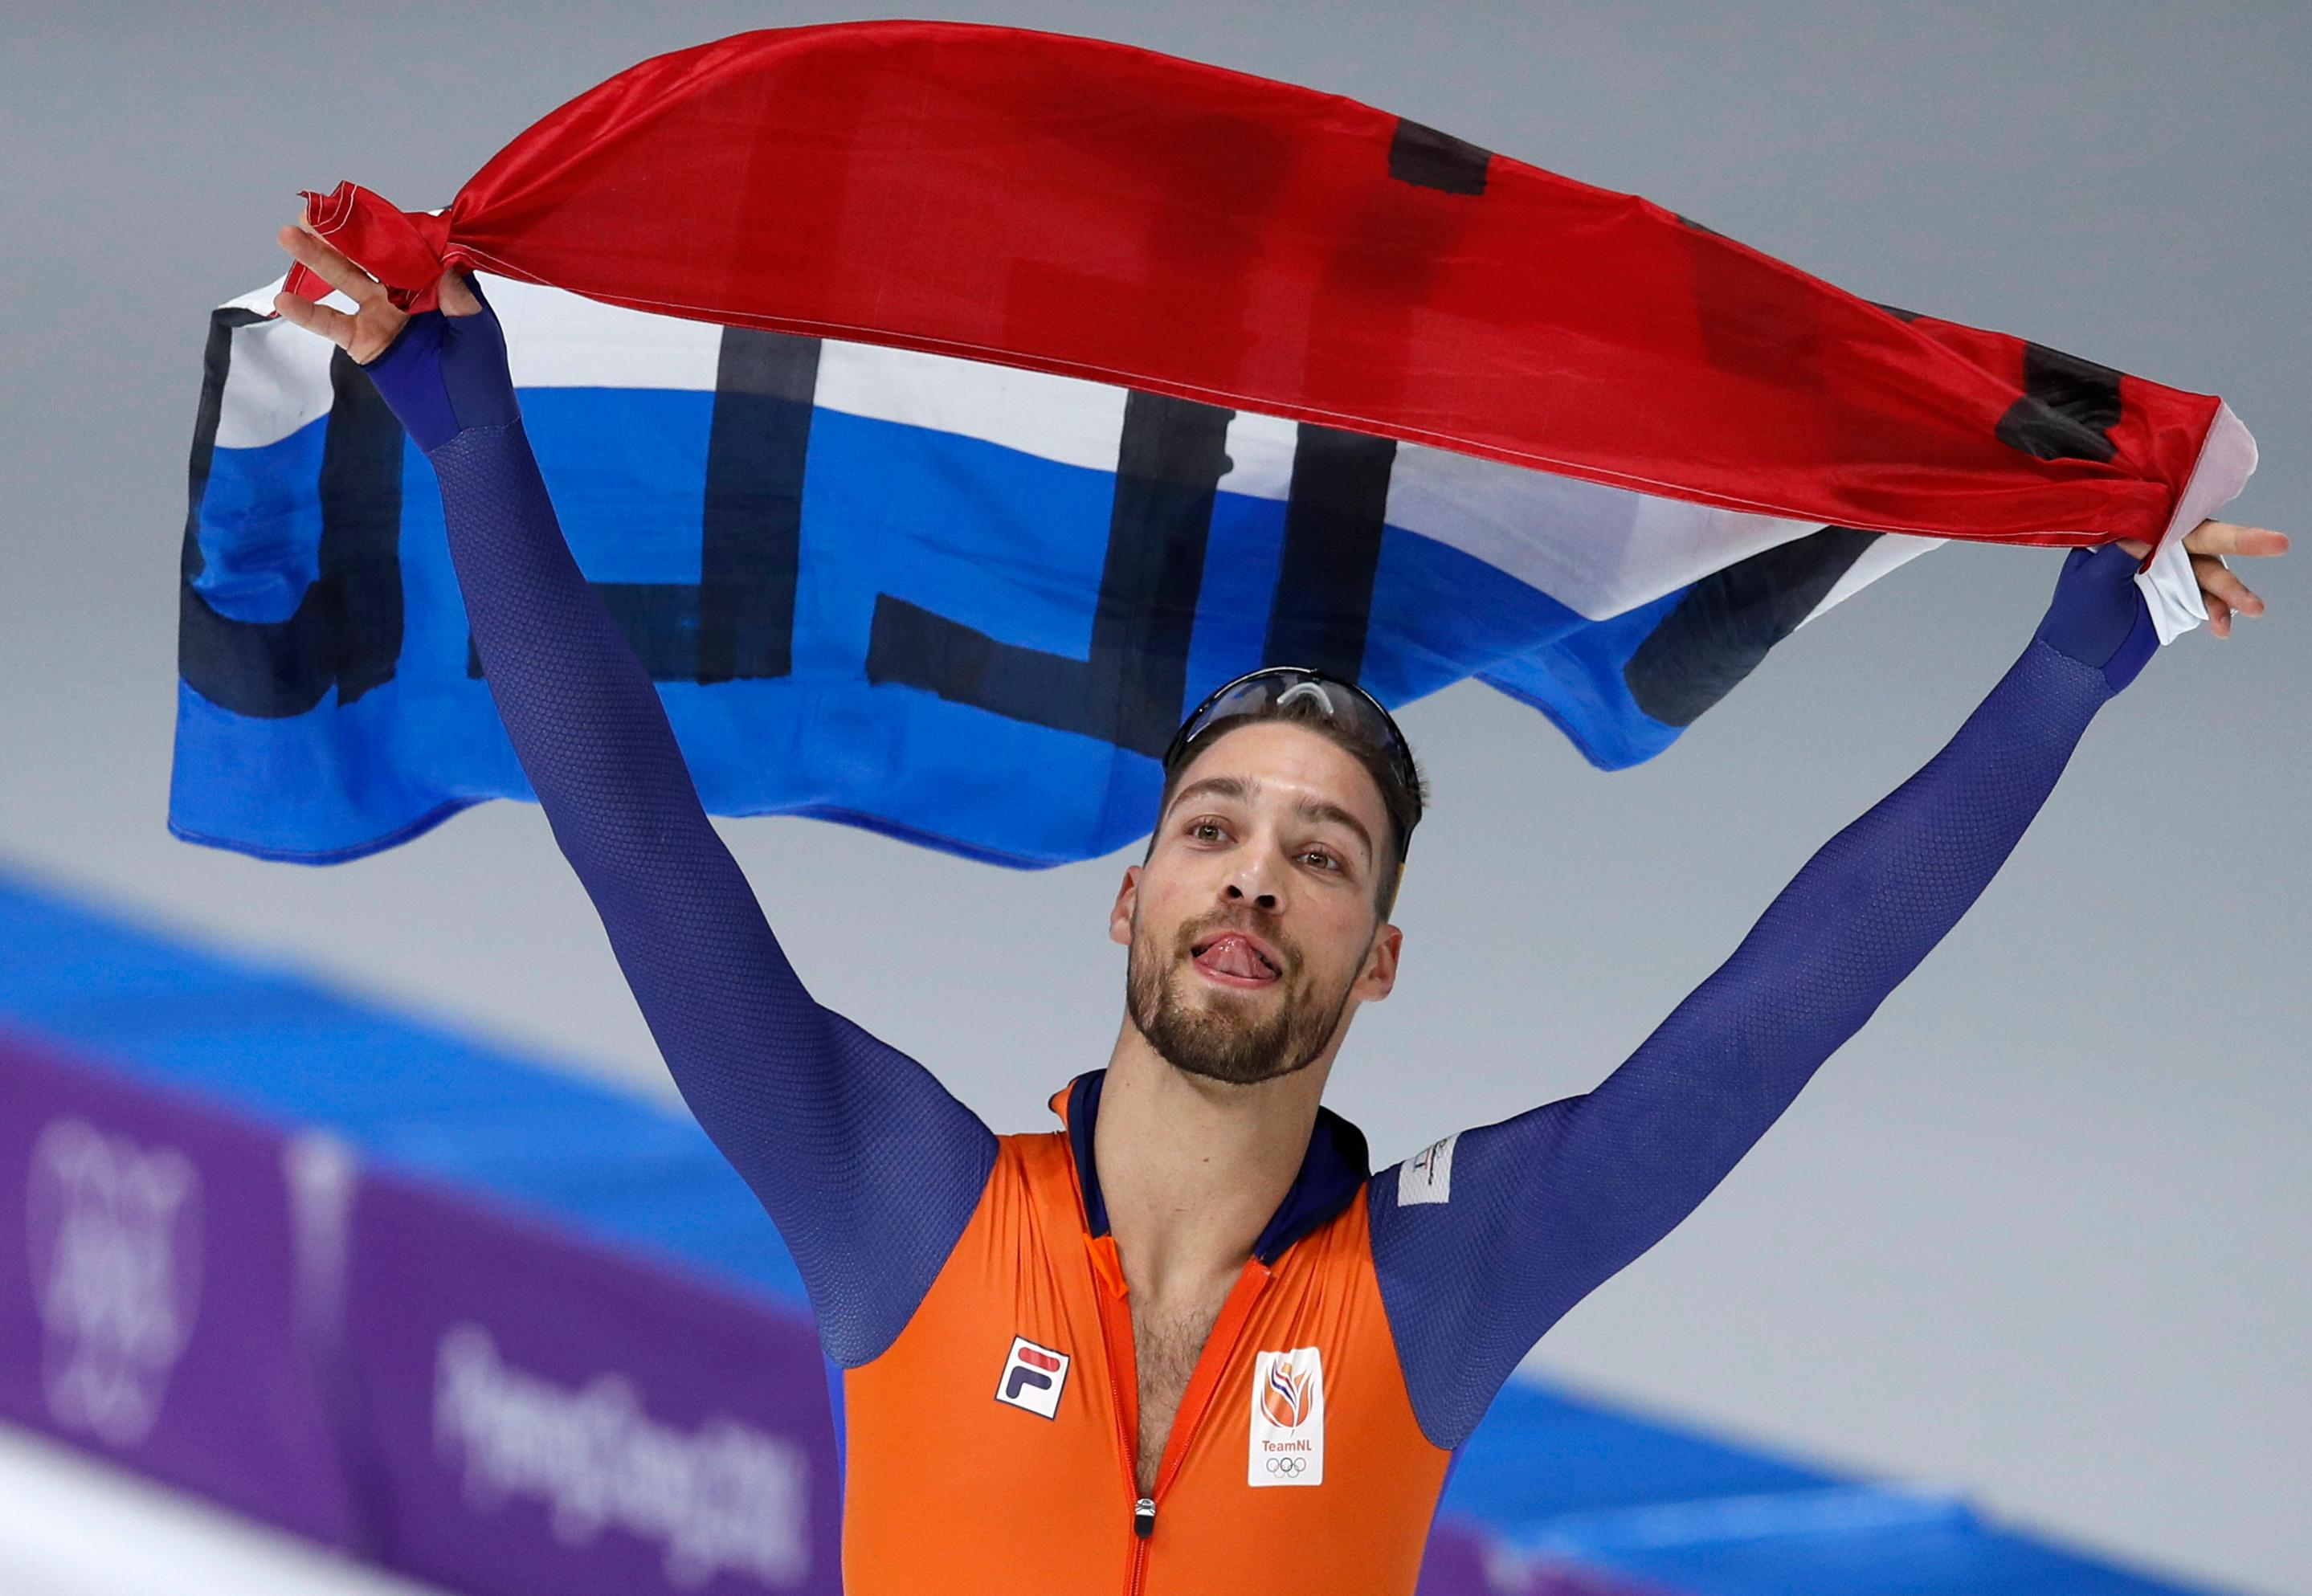 Gold medalist Kjeld Nuis of The Netherlands celebrates with the national flag after the men's 1,000 meters speedskating race at the Gangneung Oval at the 2018 Winter Olympics in Gangneung, South Korea, Friday, Feb. 23, 2018. (AP Photo/Vadim Ghirda)